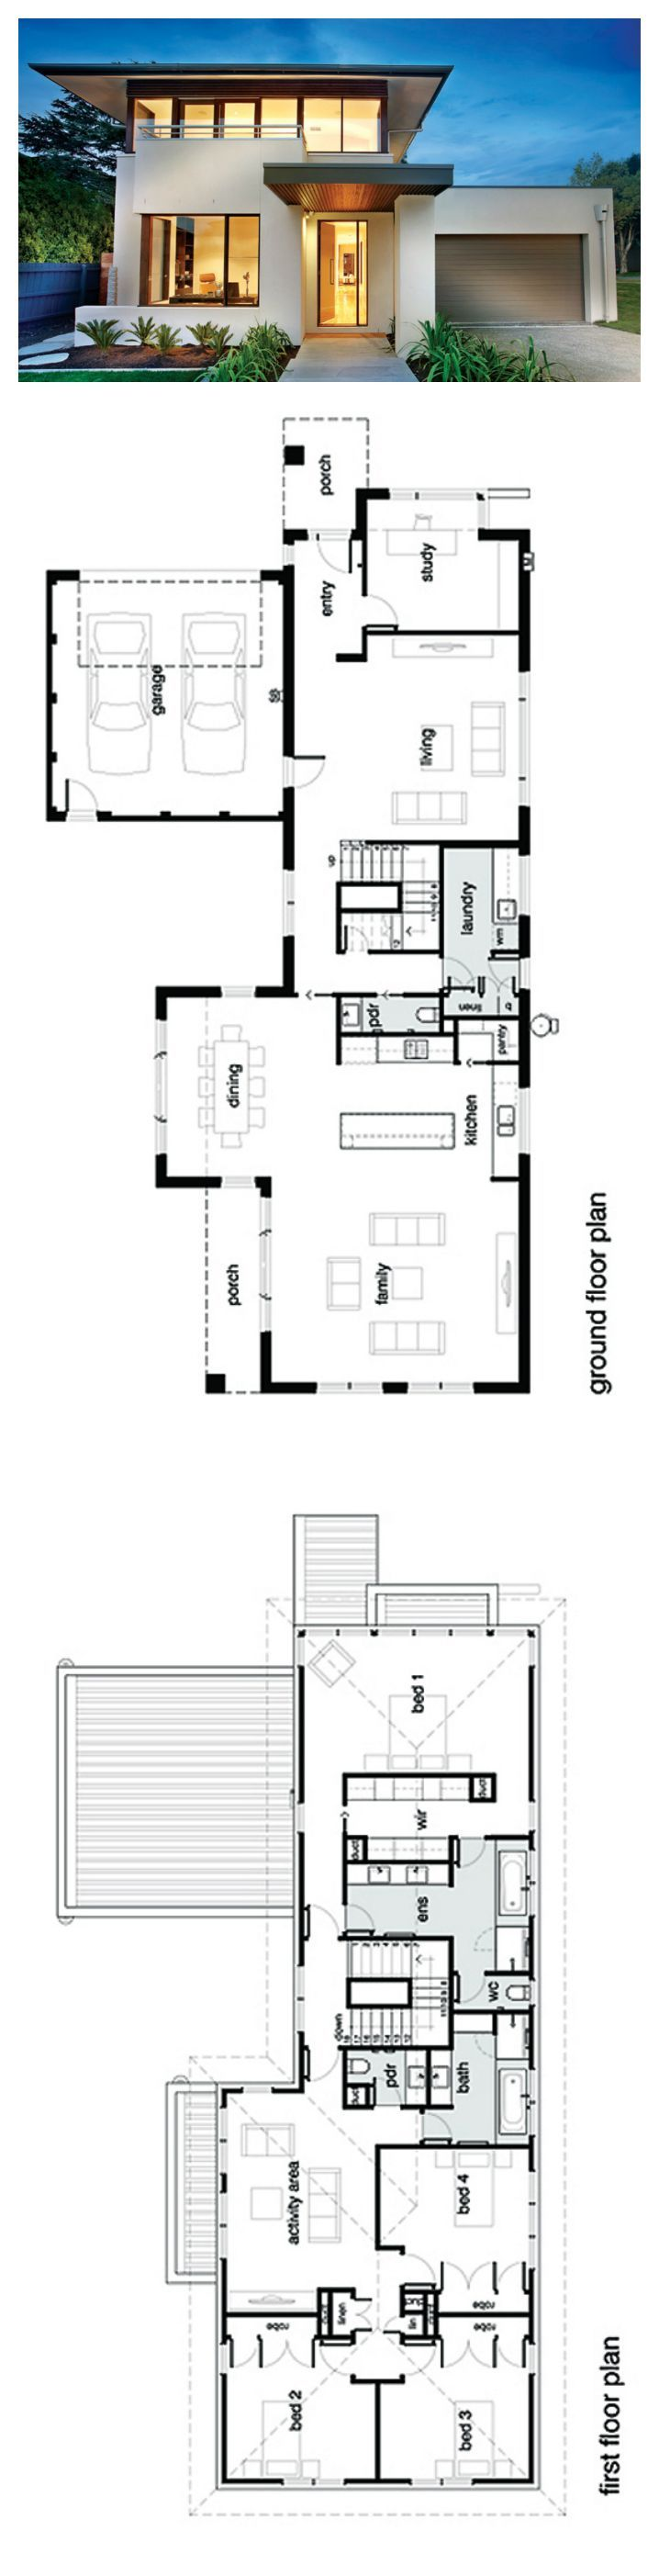 Best 25 modern house plans ideas on pinterest modern for Small house plans modern